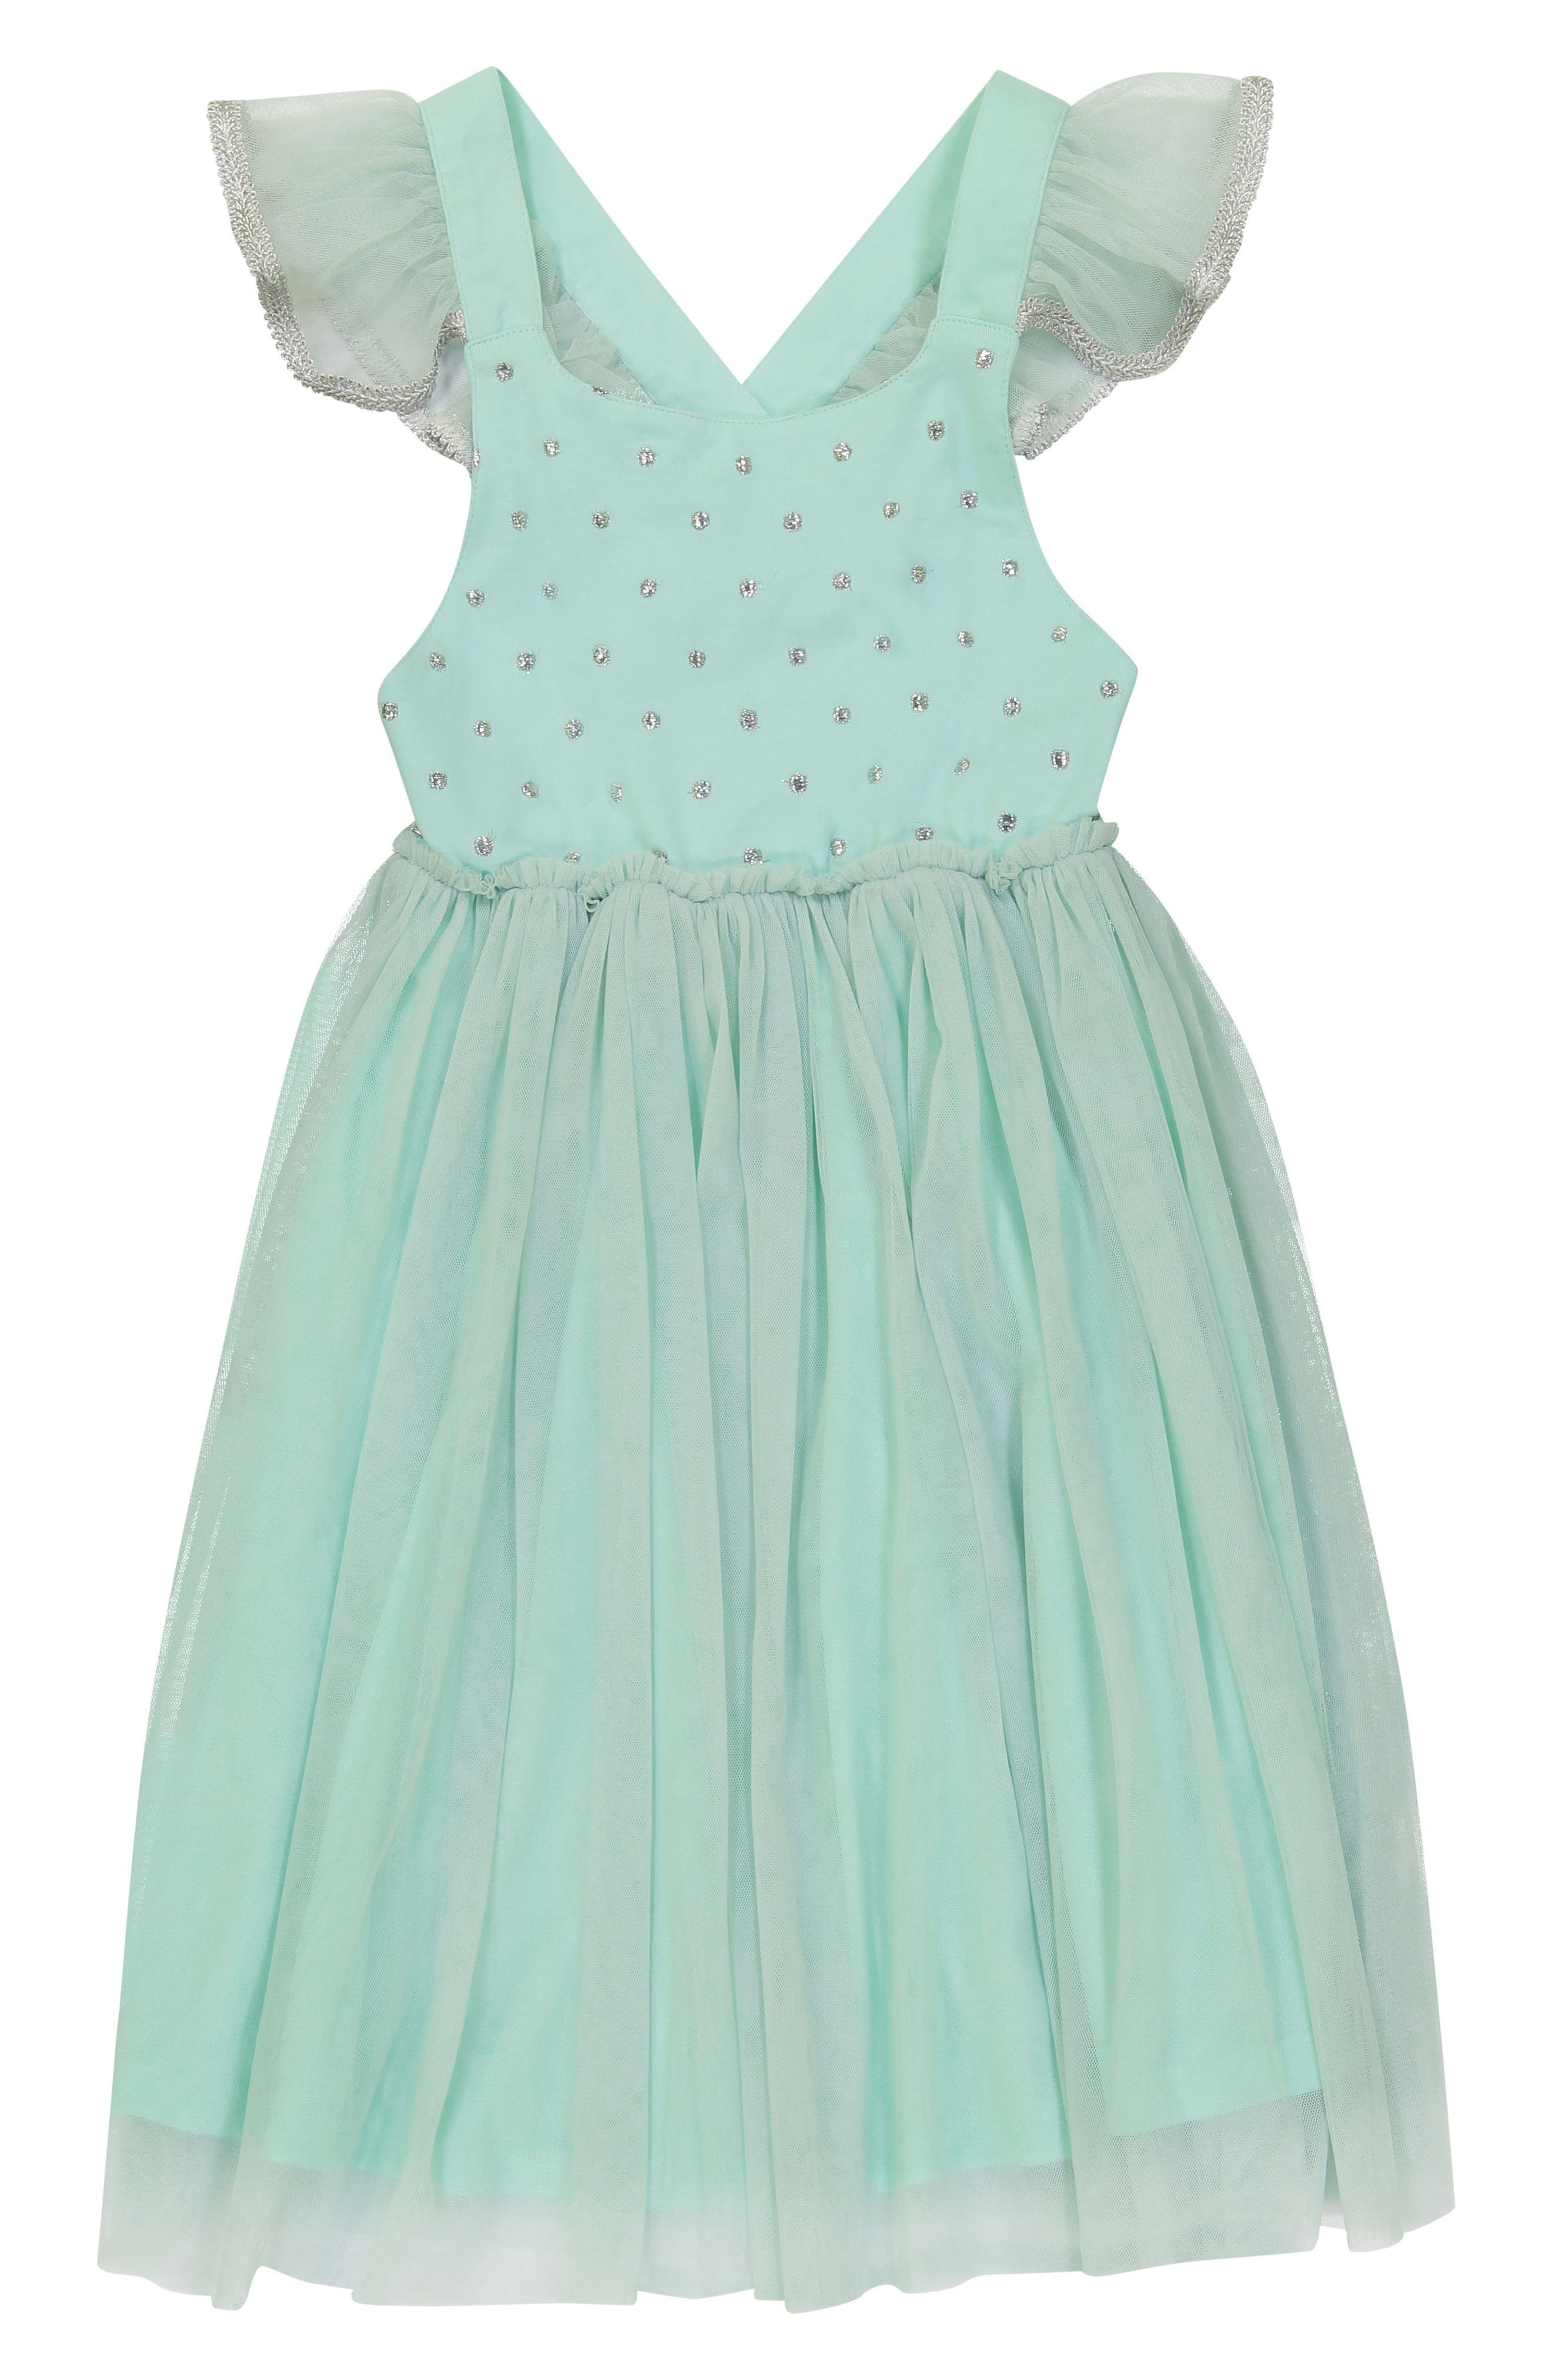 Diya Tulle Sundress,                         Main,                         color, 405